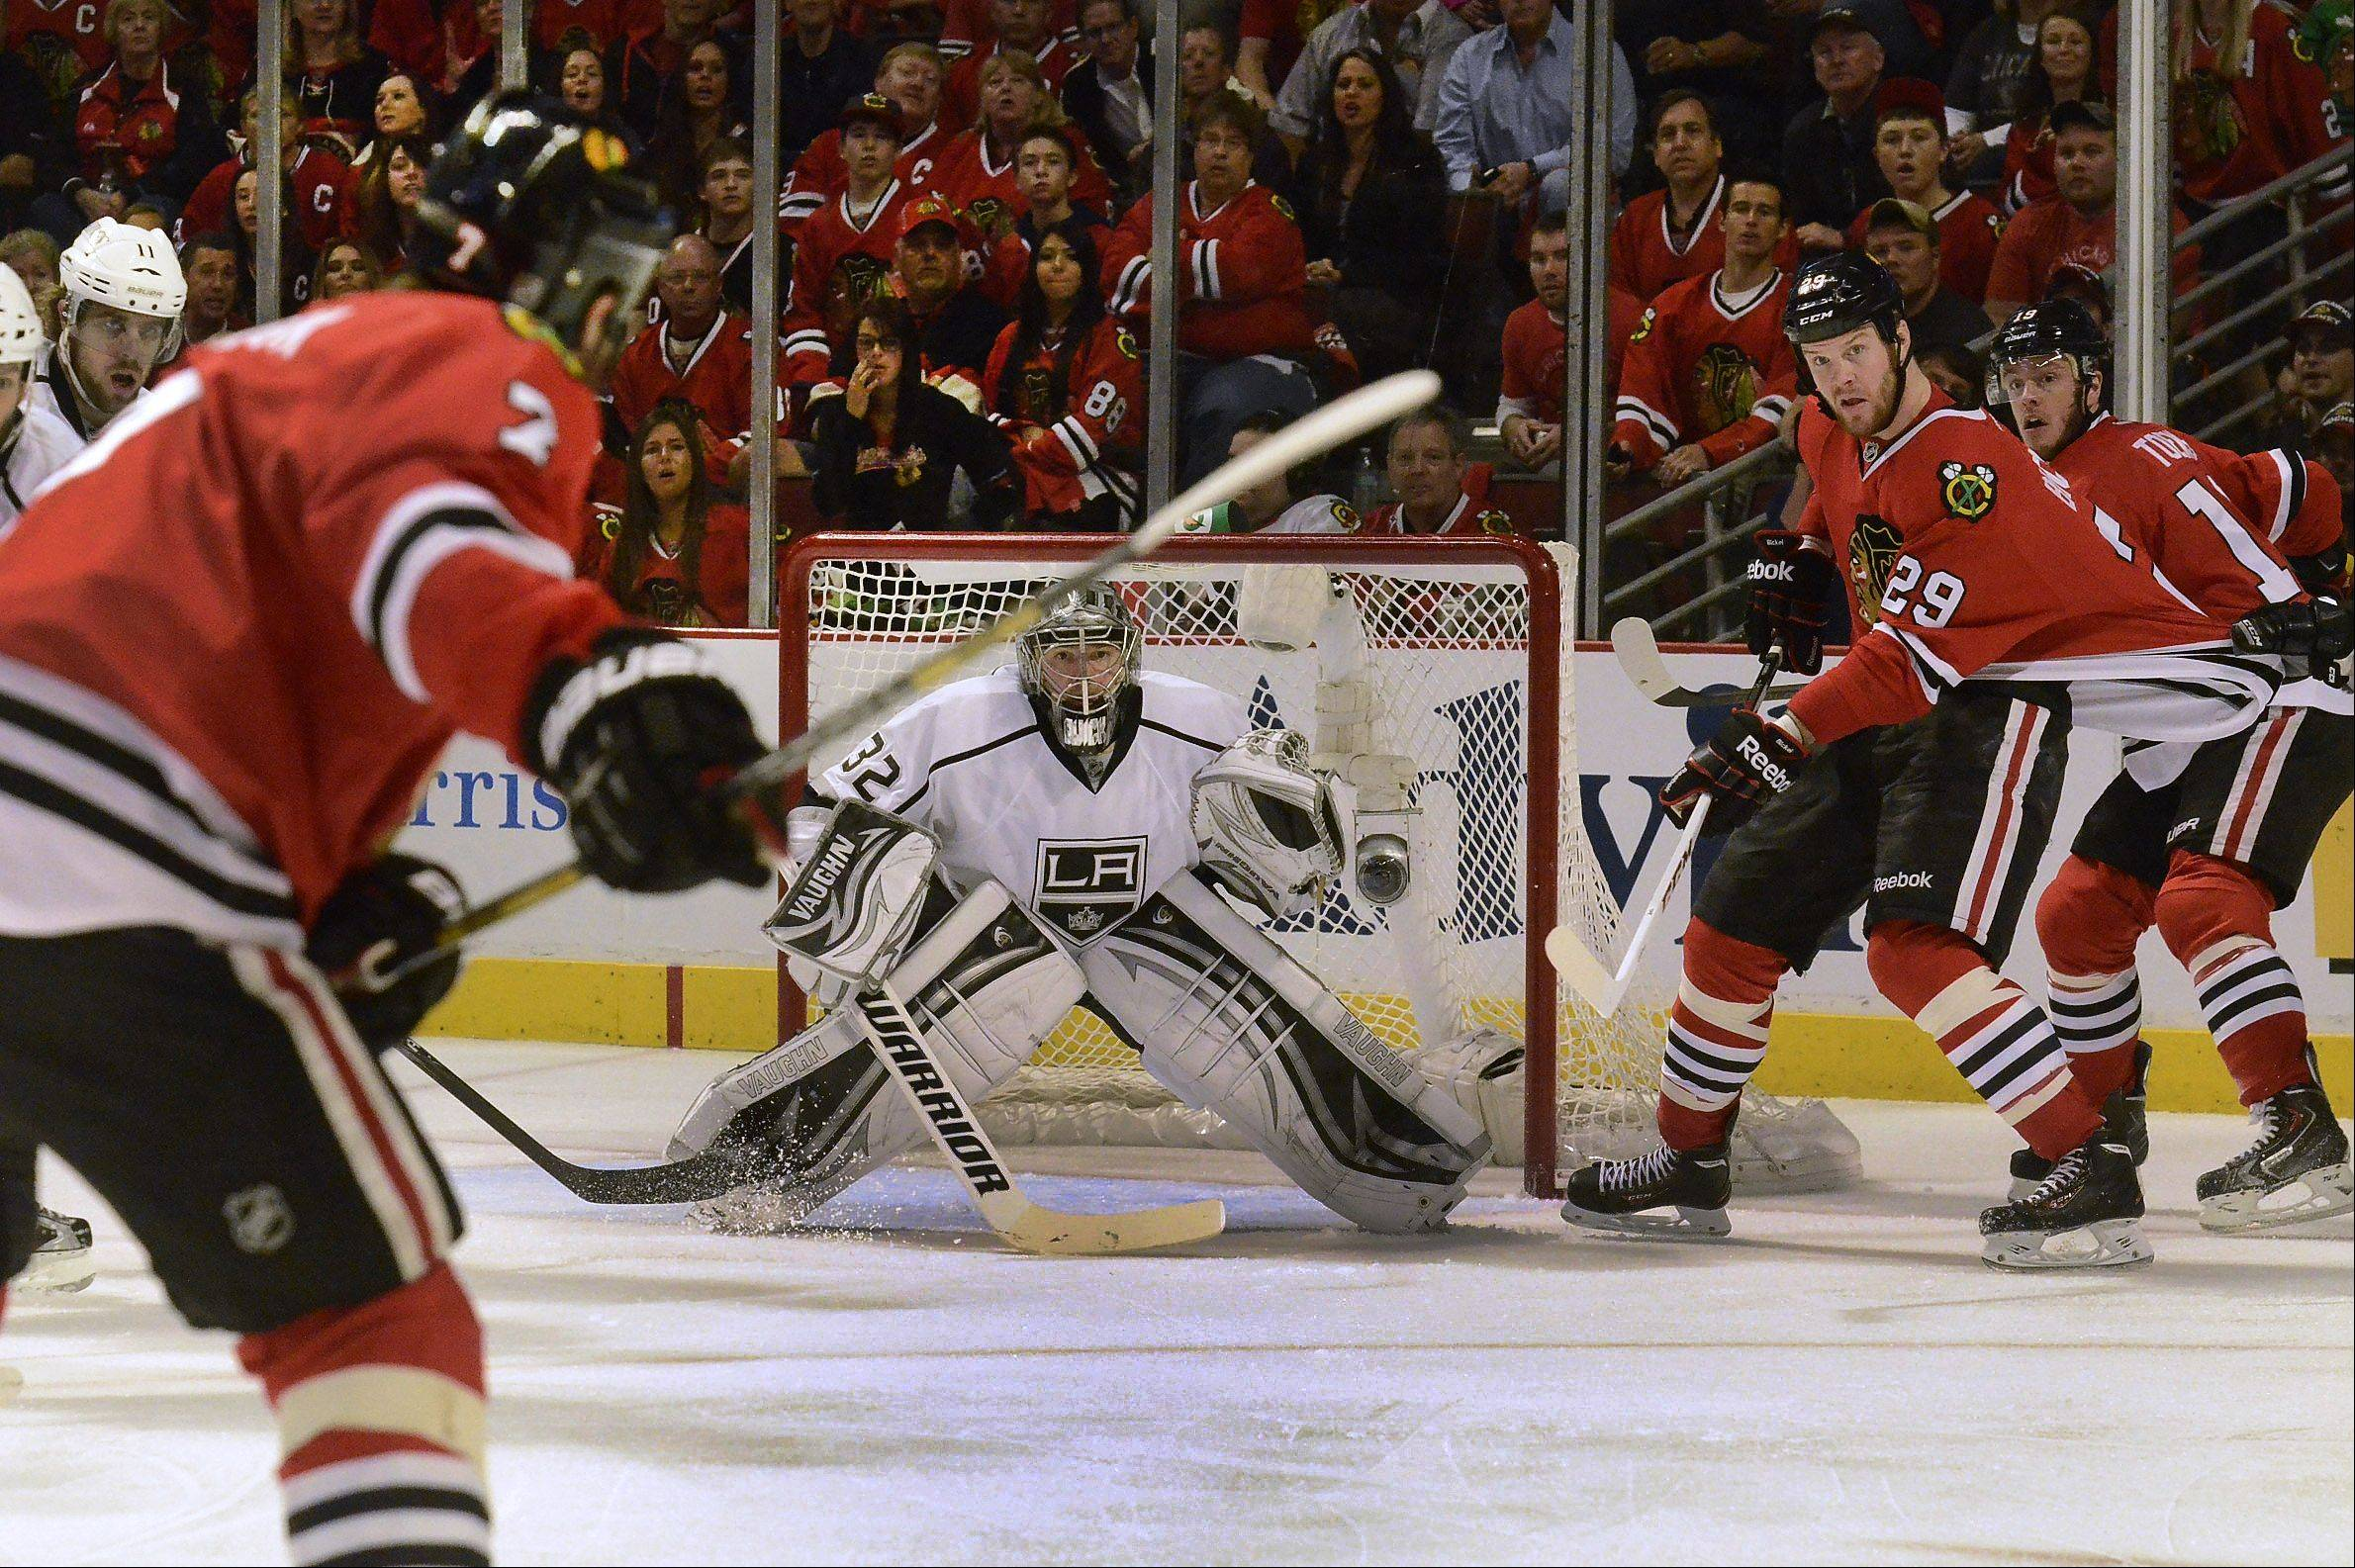 Hawks solve Quick after dominating in first period